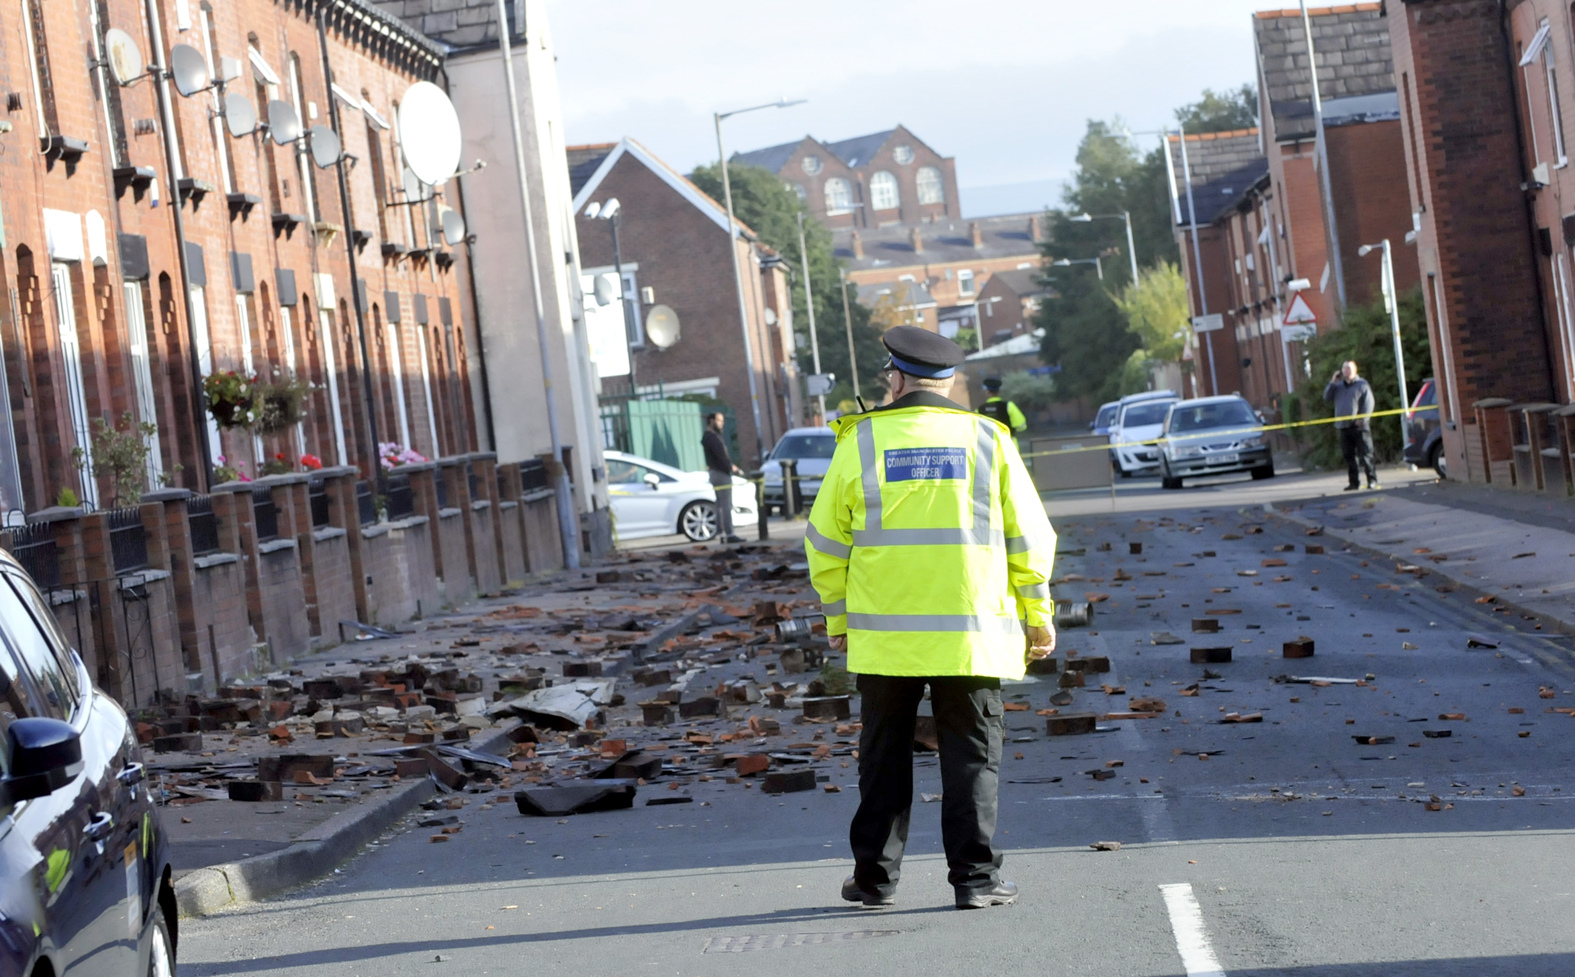 PICTURES/ VIDEOS Update 4.55pm: Road reopens after man scales roof of house and hurls tiles into street below